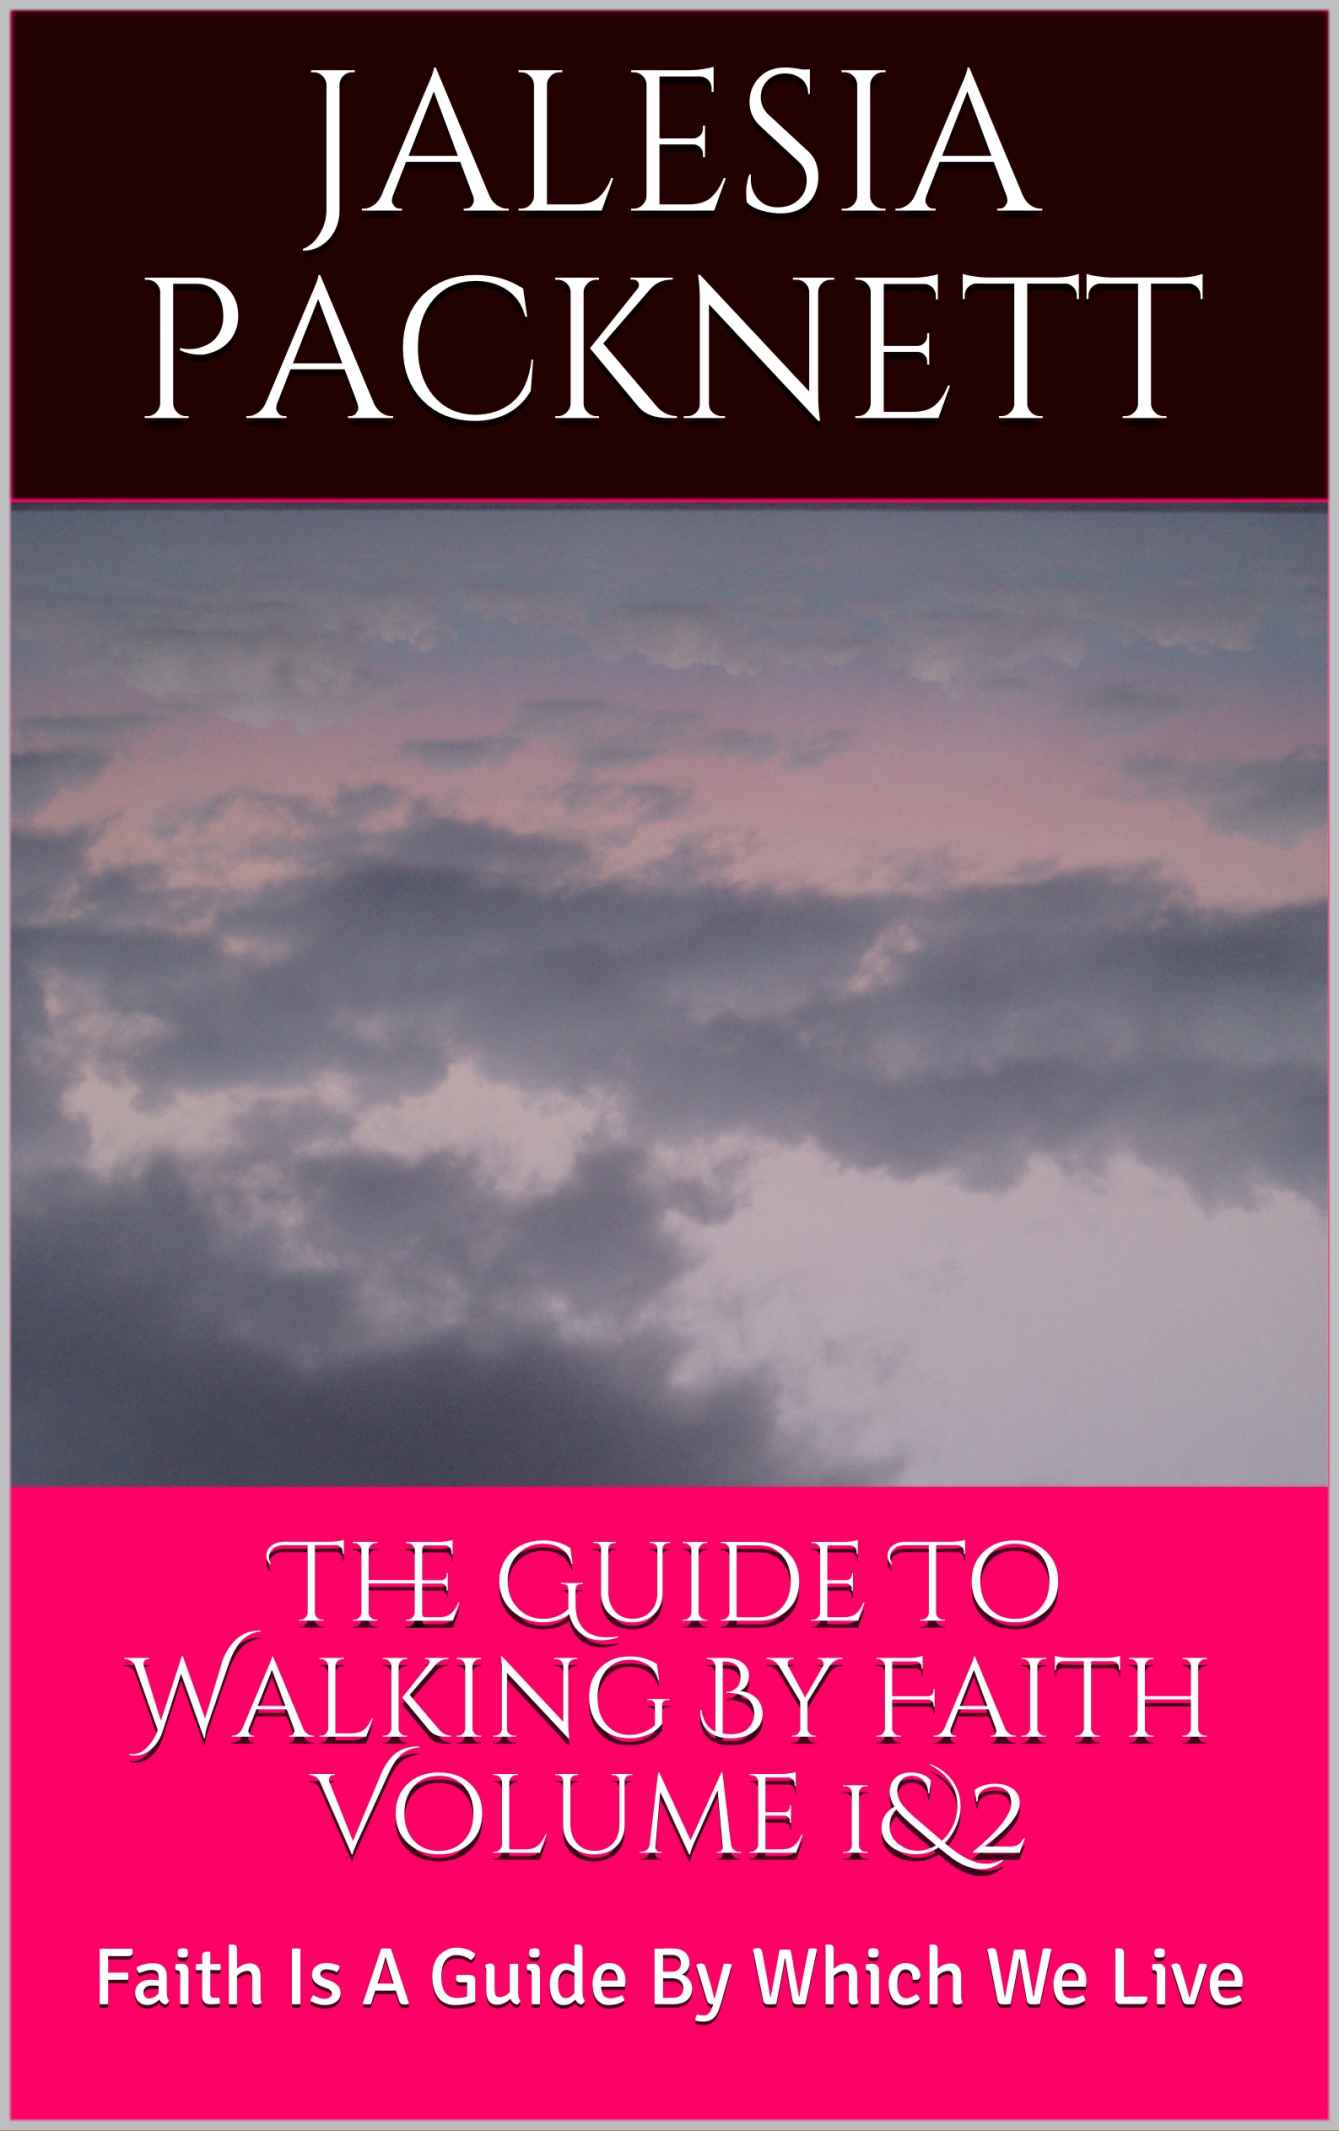 The Guide To Walking By Faith Volume 1&2: Faith Is A Guide By Which We Live